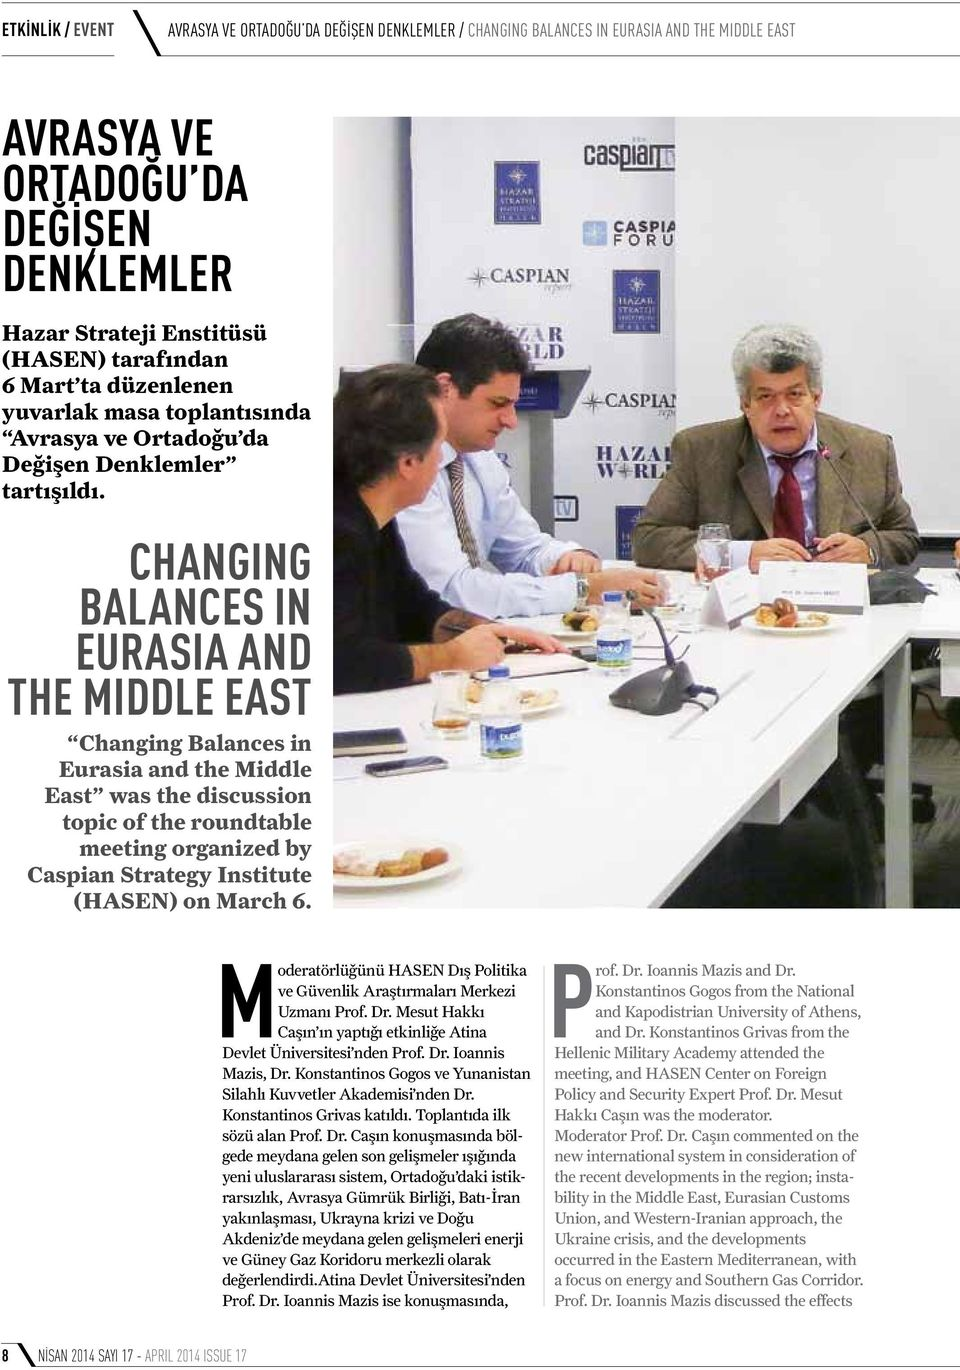 CHANGING BALANCES IN EURASIA AND THE MIDDLE EAST Changing Balances in Eurasia and the Middle East was the discussion topic of the roundtable meeting organized by Caspian Strategy Institute (HASEN) on